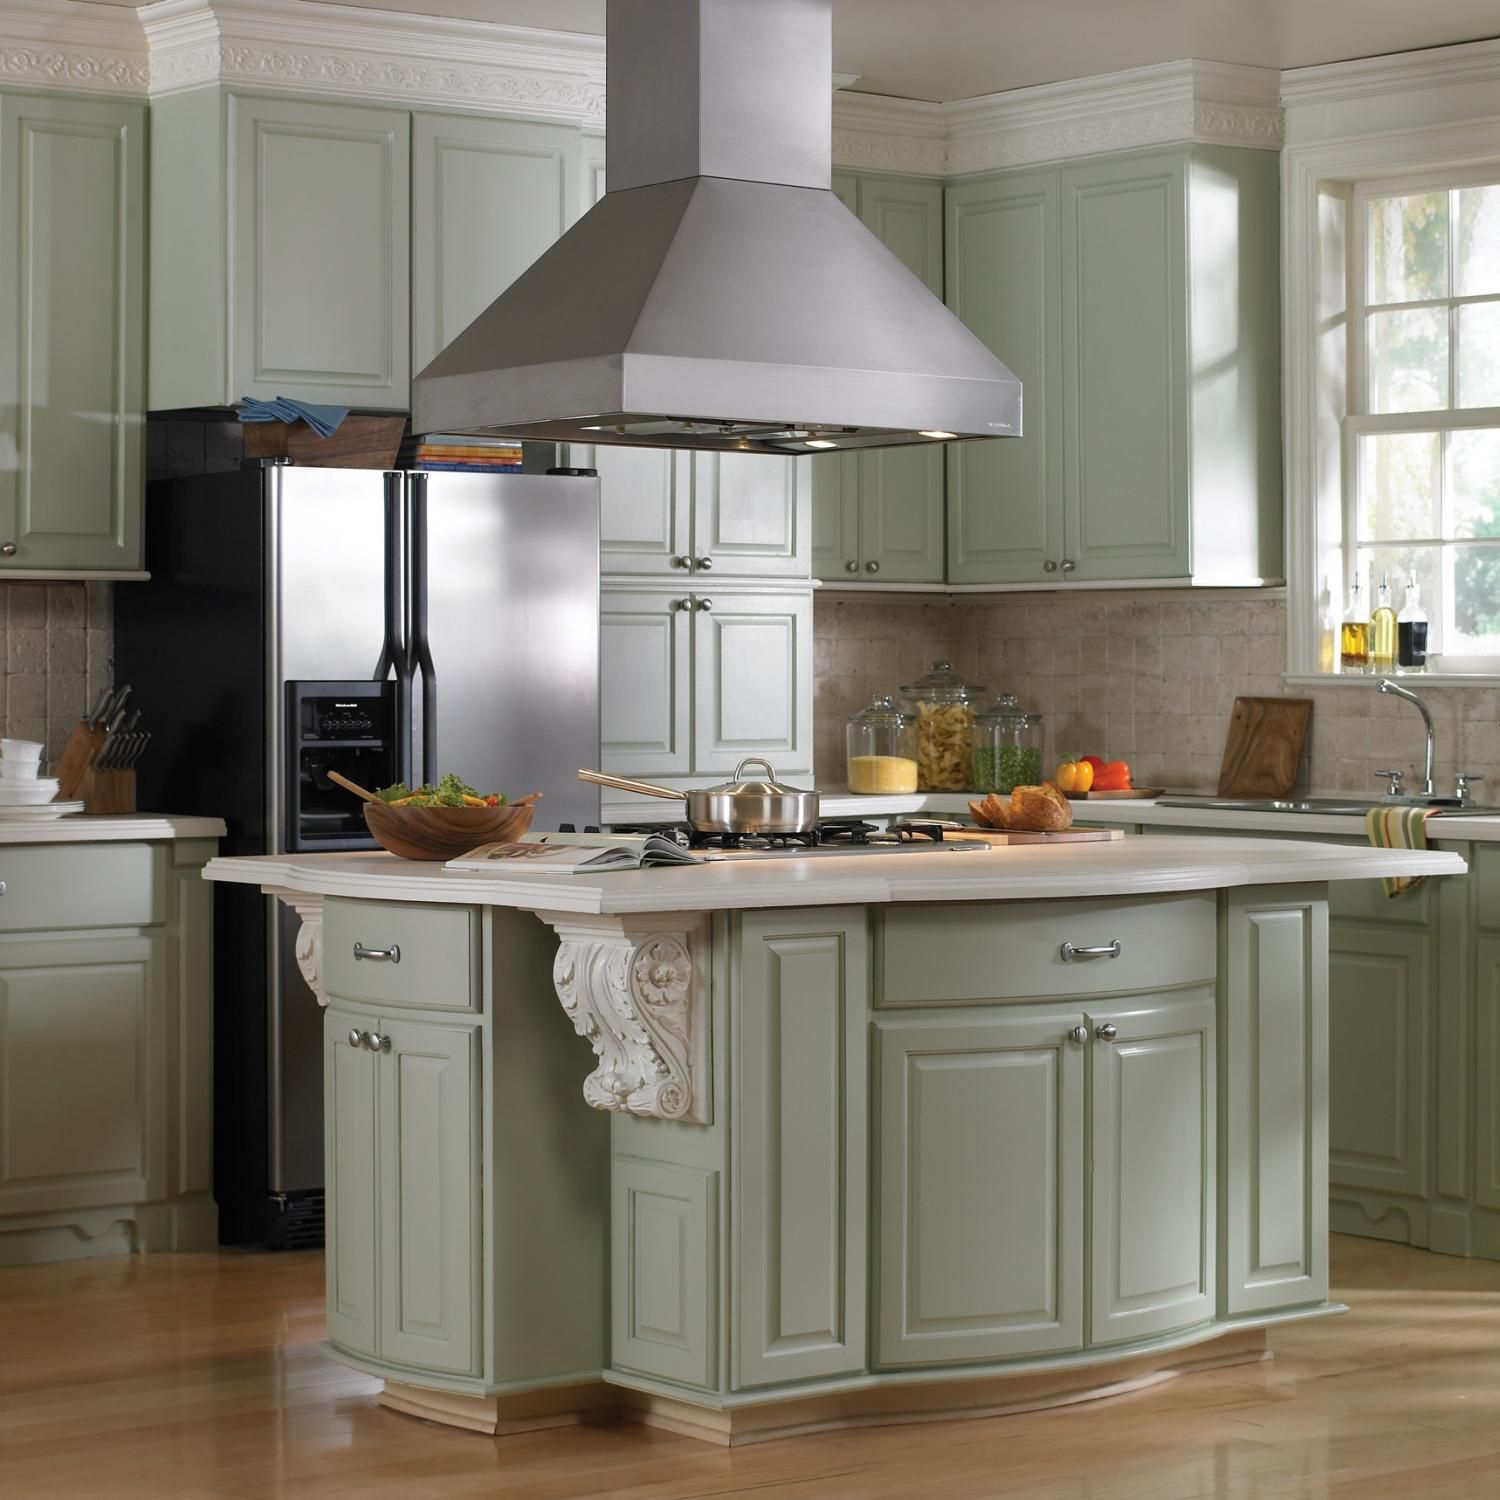 Kitchen Cabinets That Hang From The Ceiling: Ceiling: Fabulous Hanging Range Hood Over Small Island